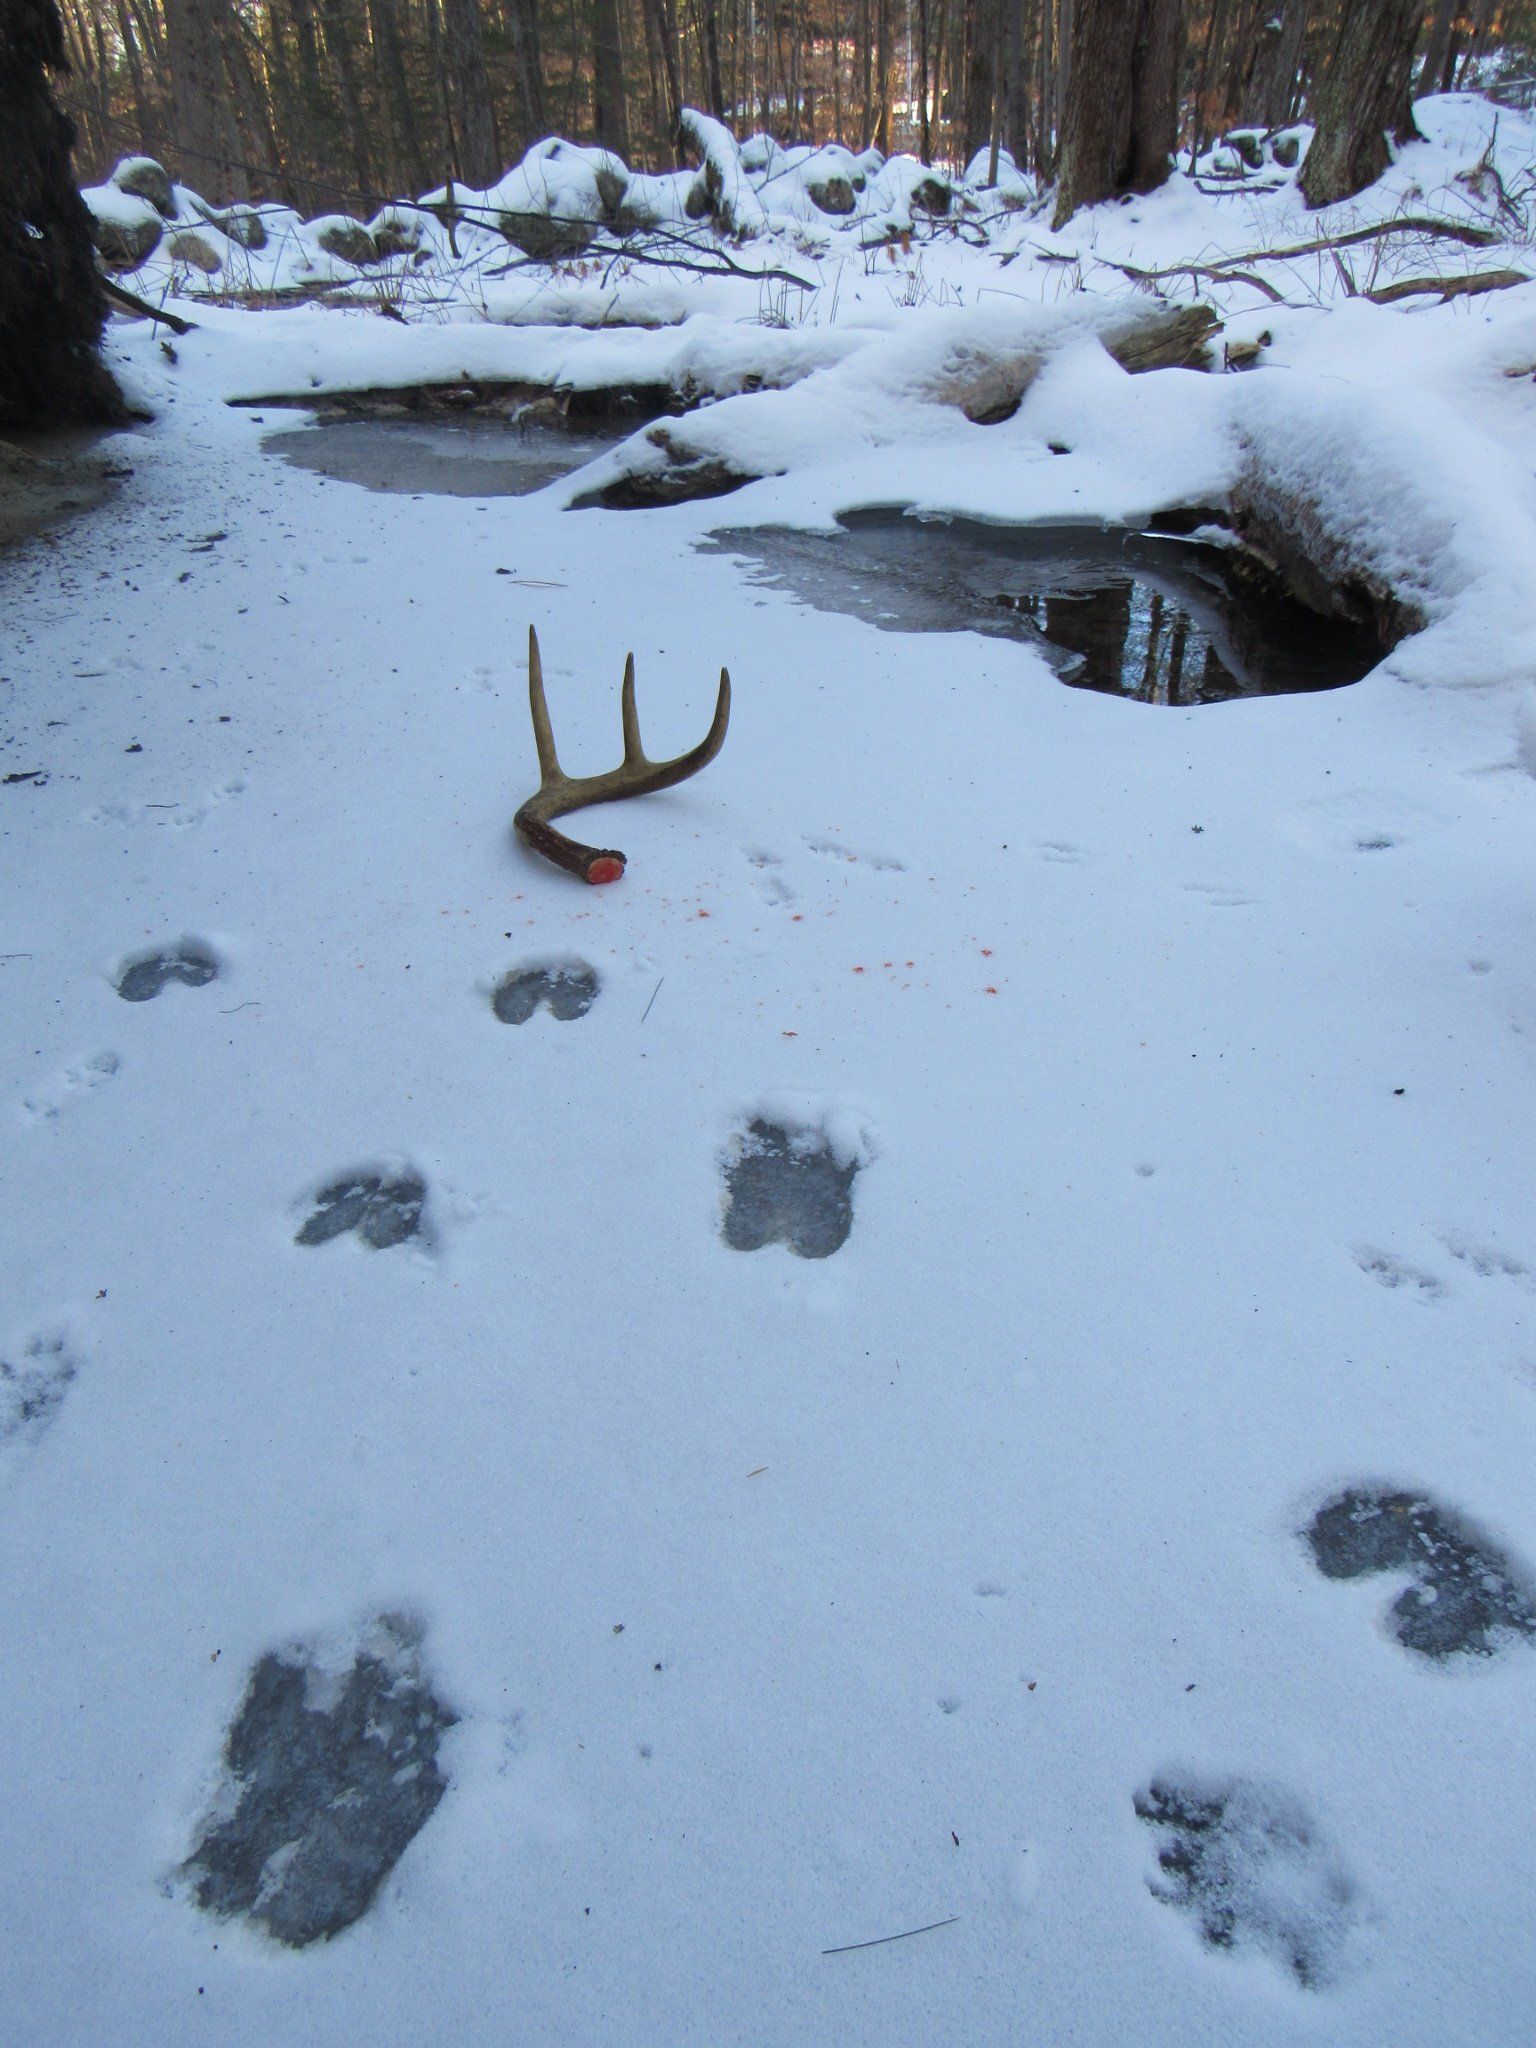 Finding Shed Deer Antlers On Our Morning Hike In Southern Vermont